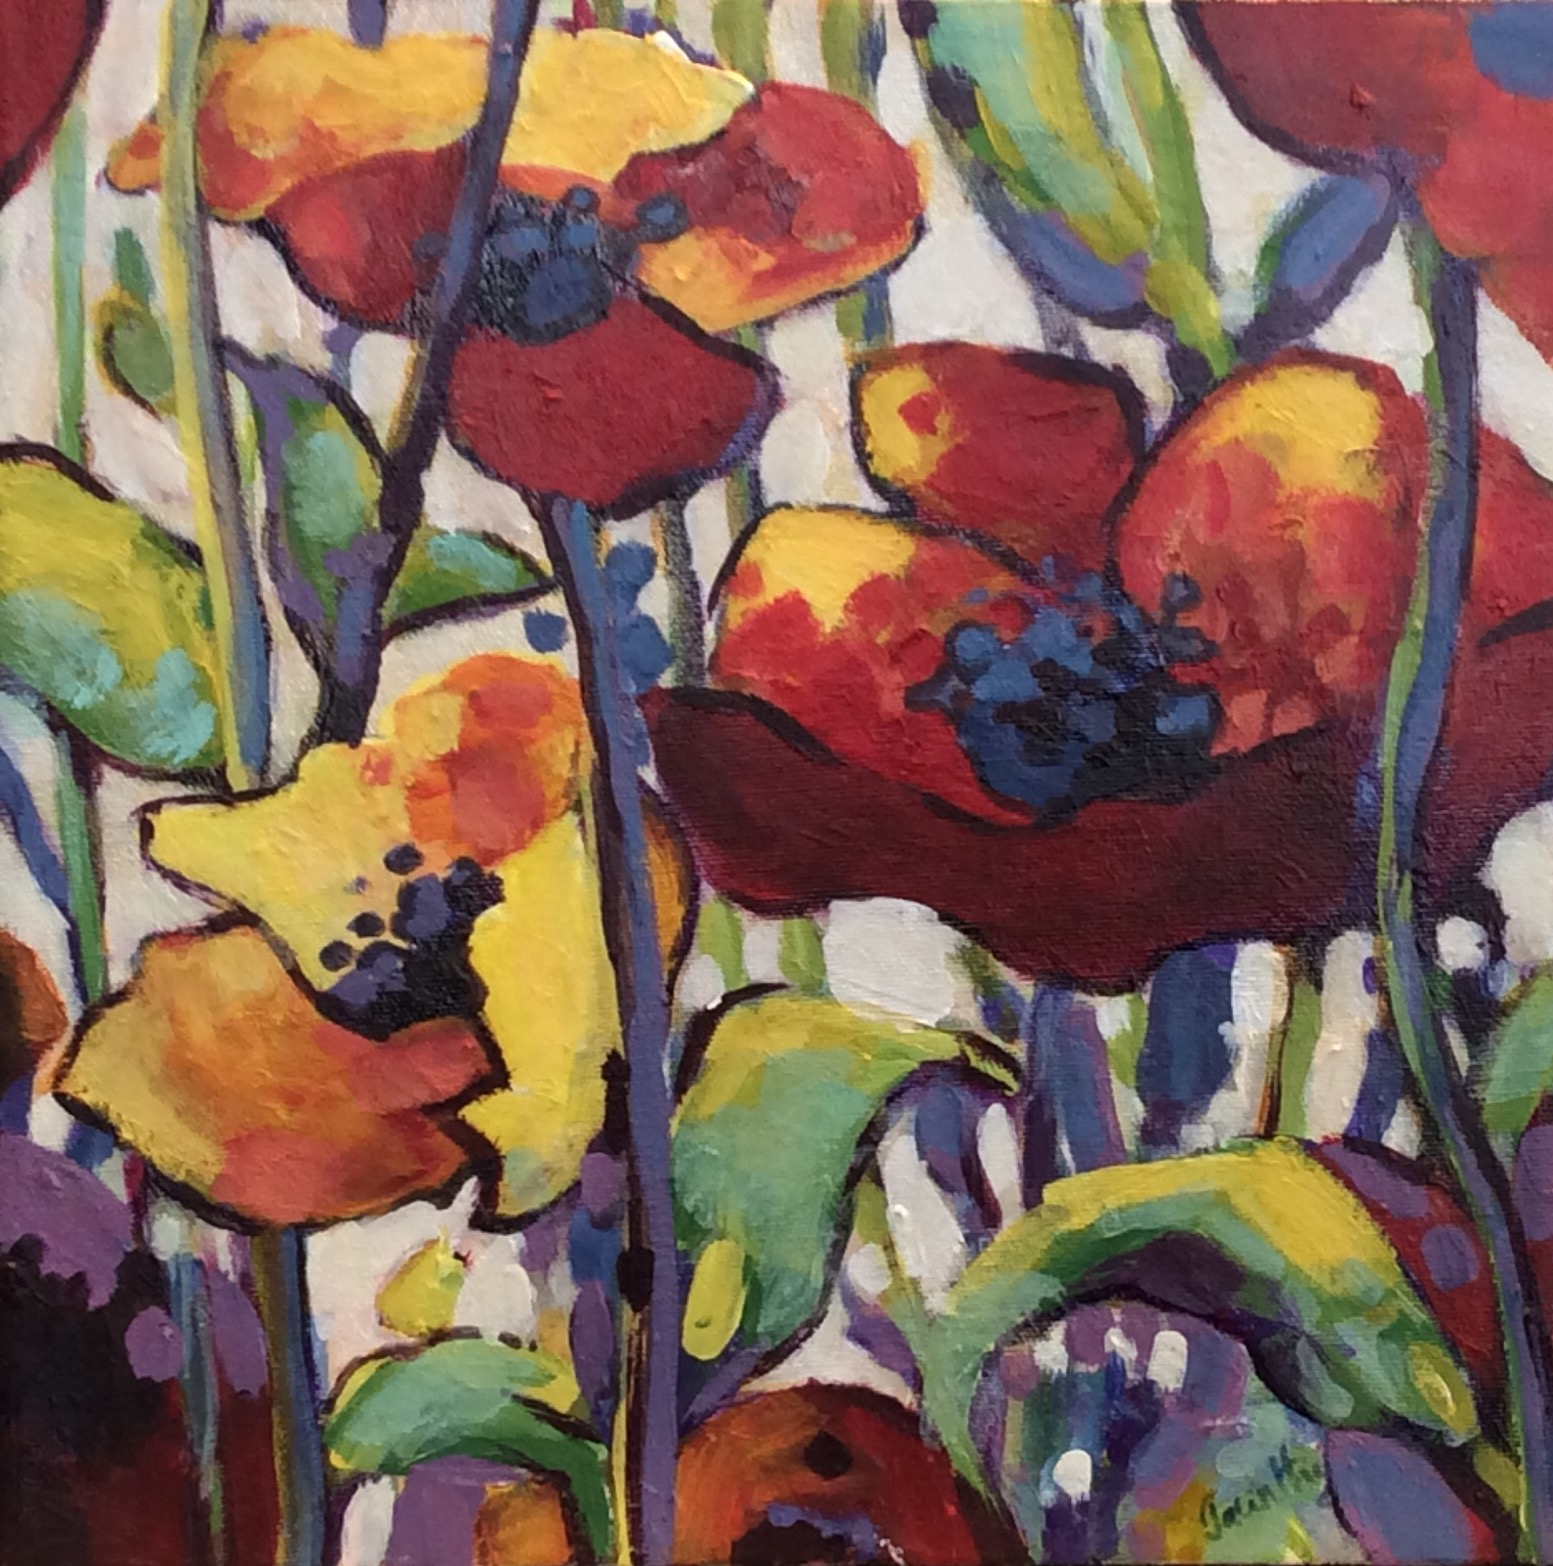 SOLD - POPPIES IN RHYTHM